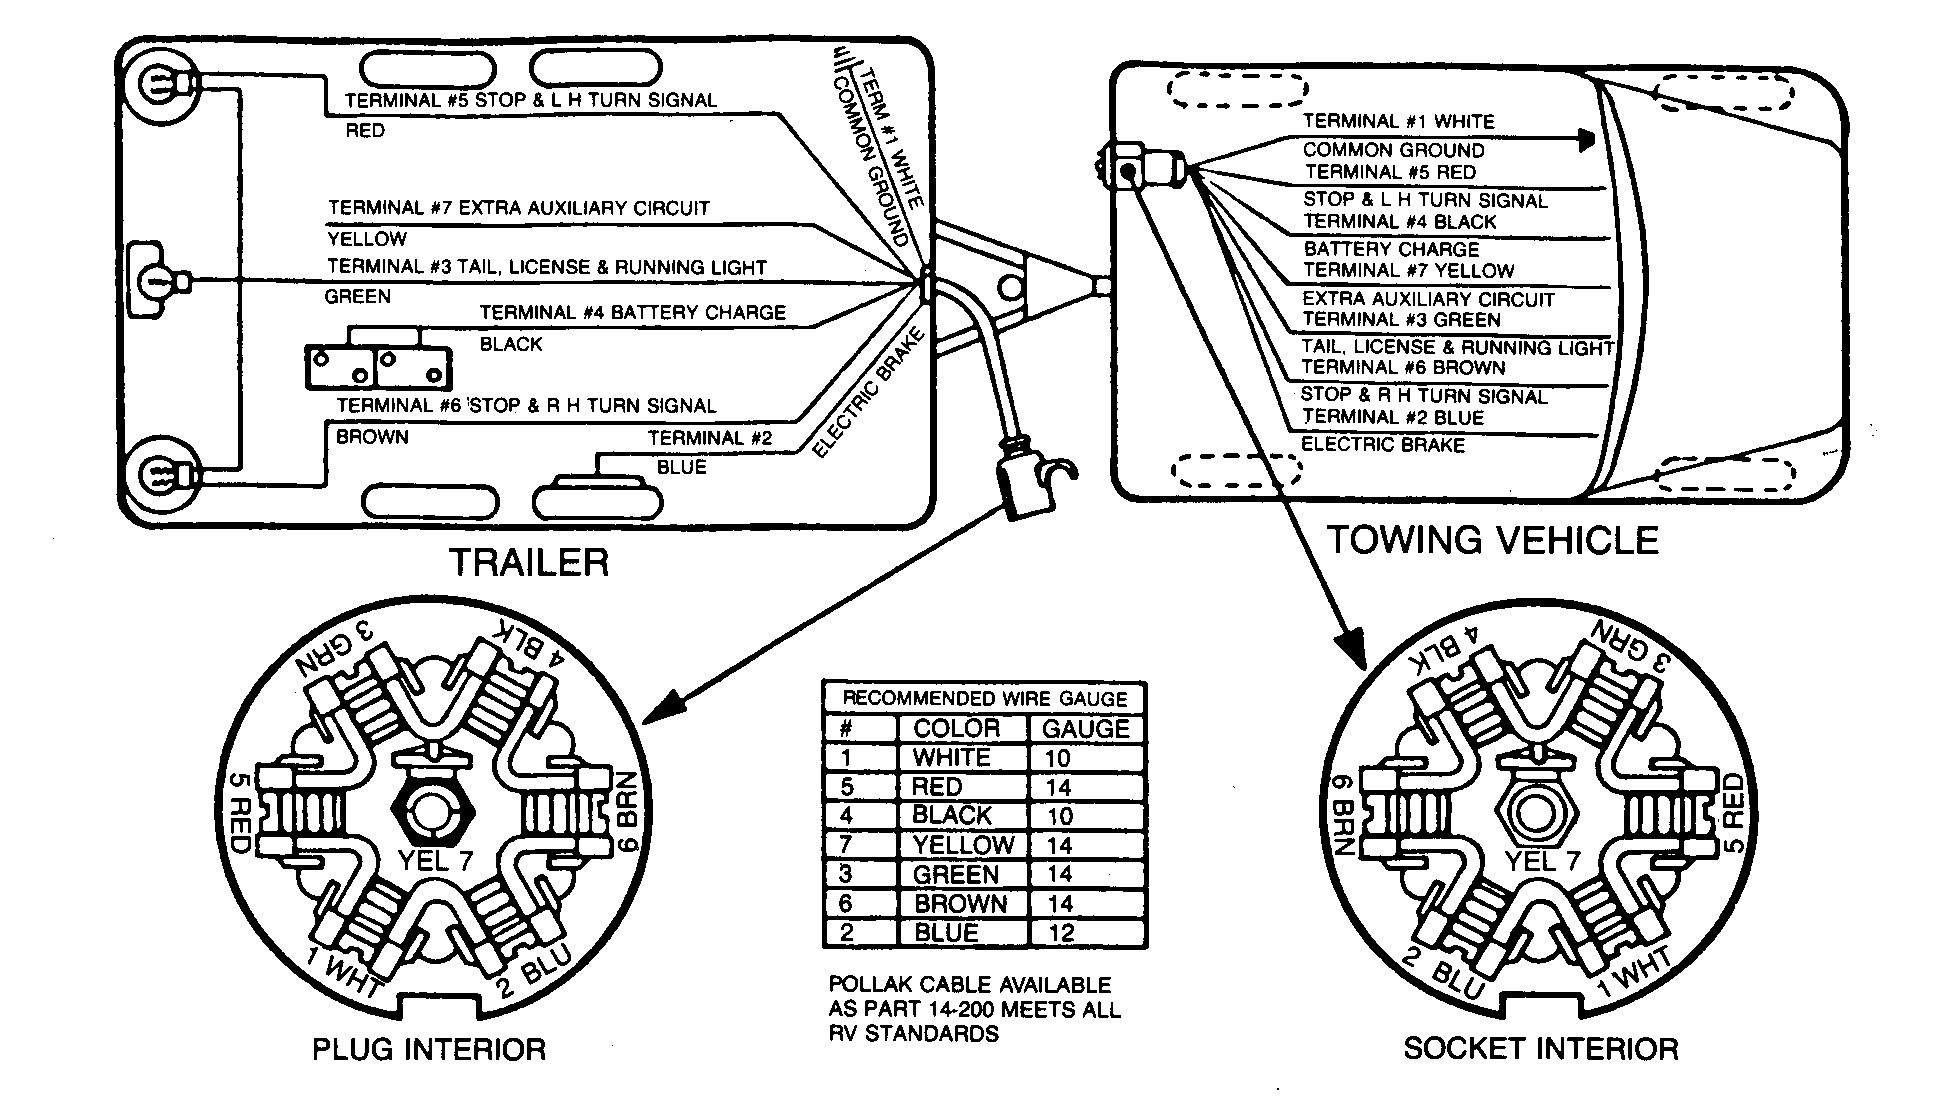 7 Prong Trailer Wiring Diagram New Plug Within Standard Pin - 7 Prong Trailer Plug Wiring Diagram